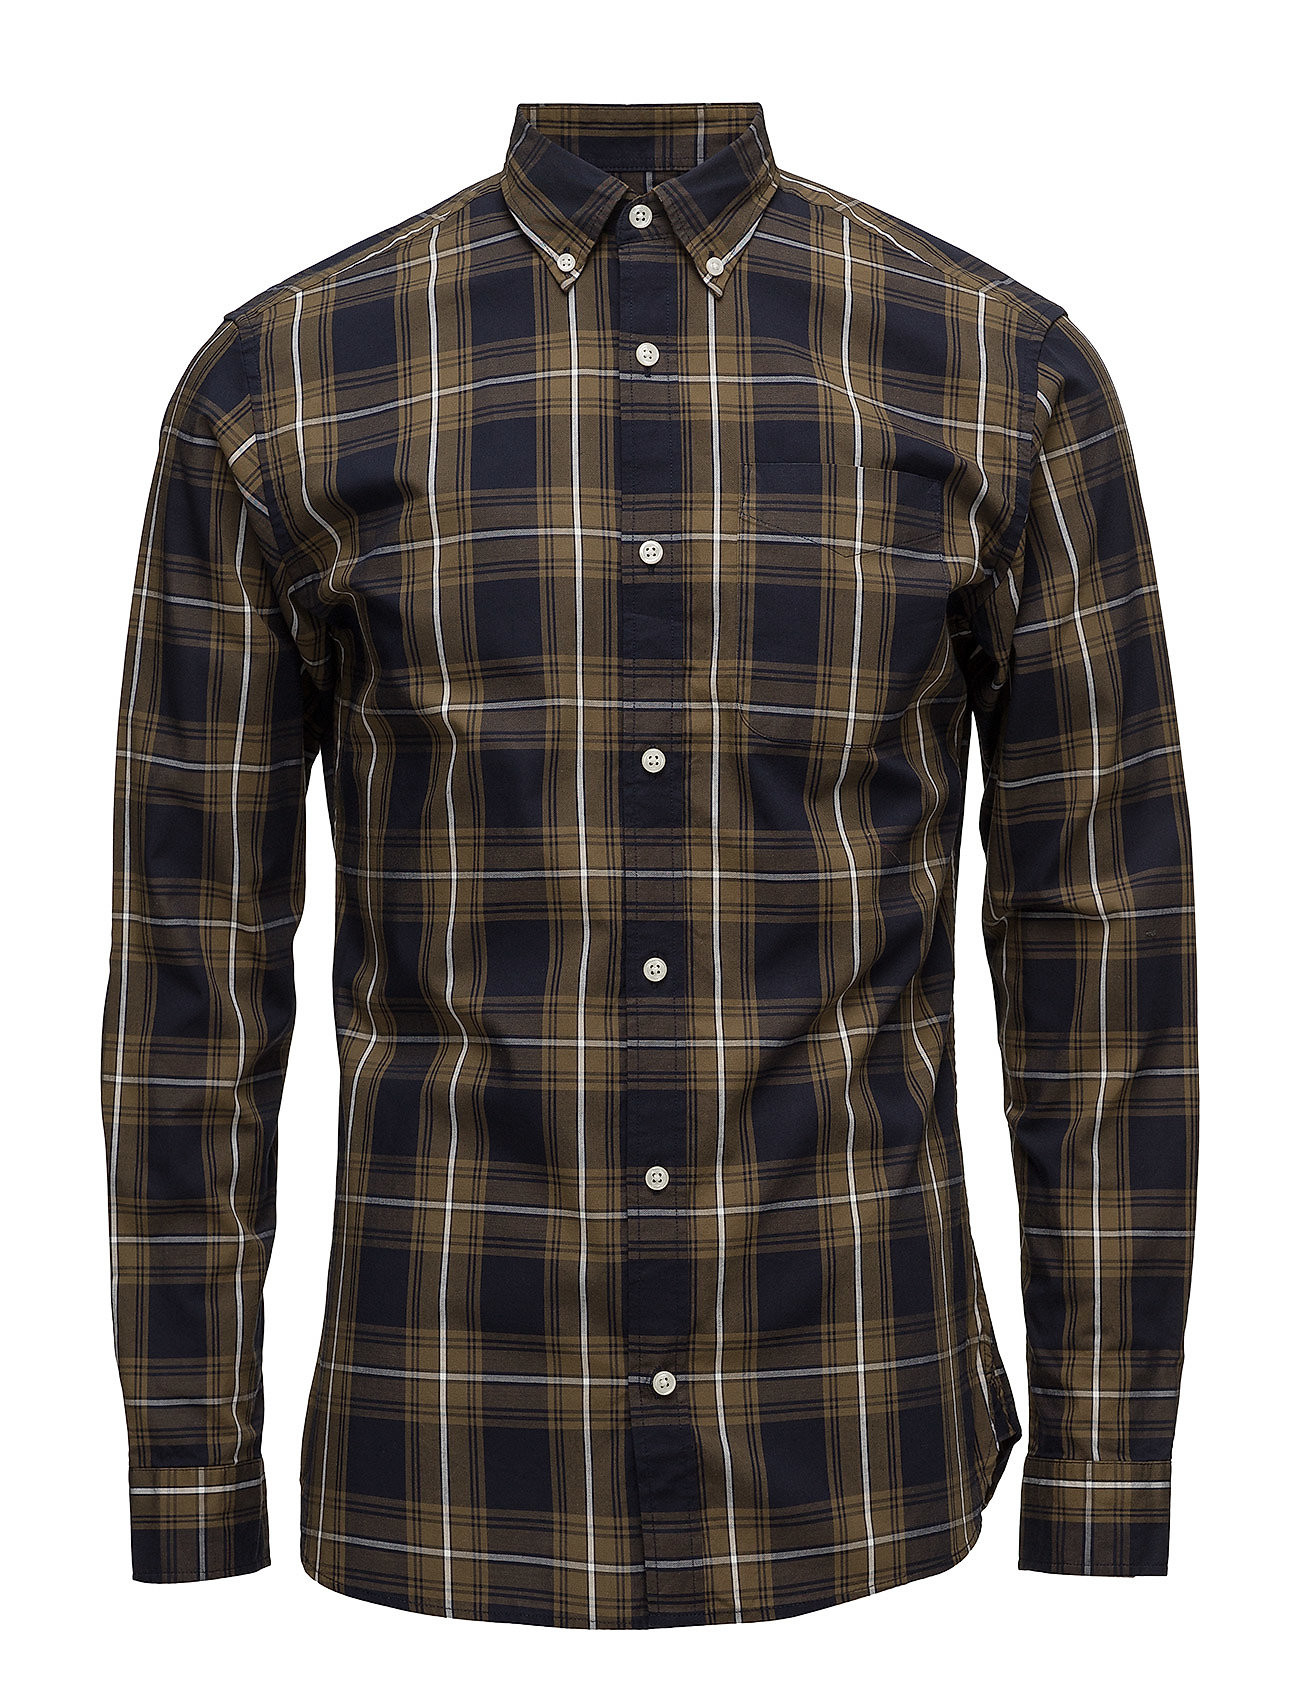 jack & jones premium – Jprsantos shirt l/s one pocket på boozt.com dk